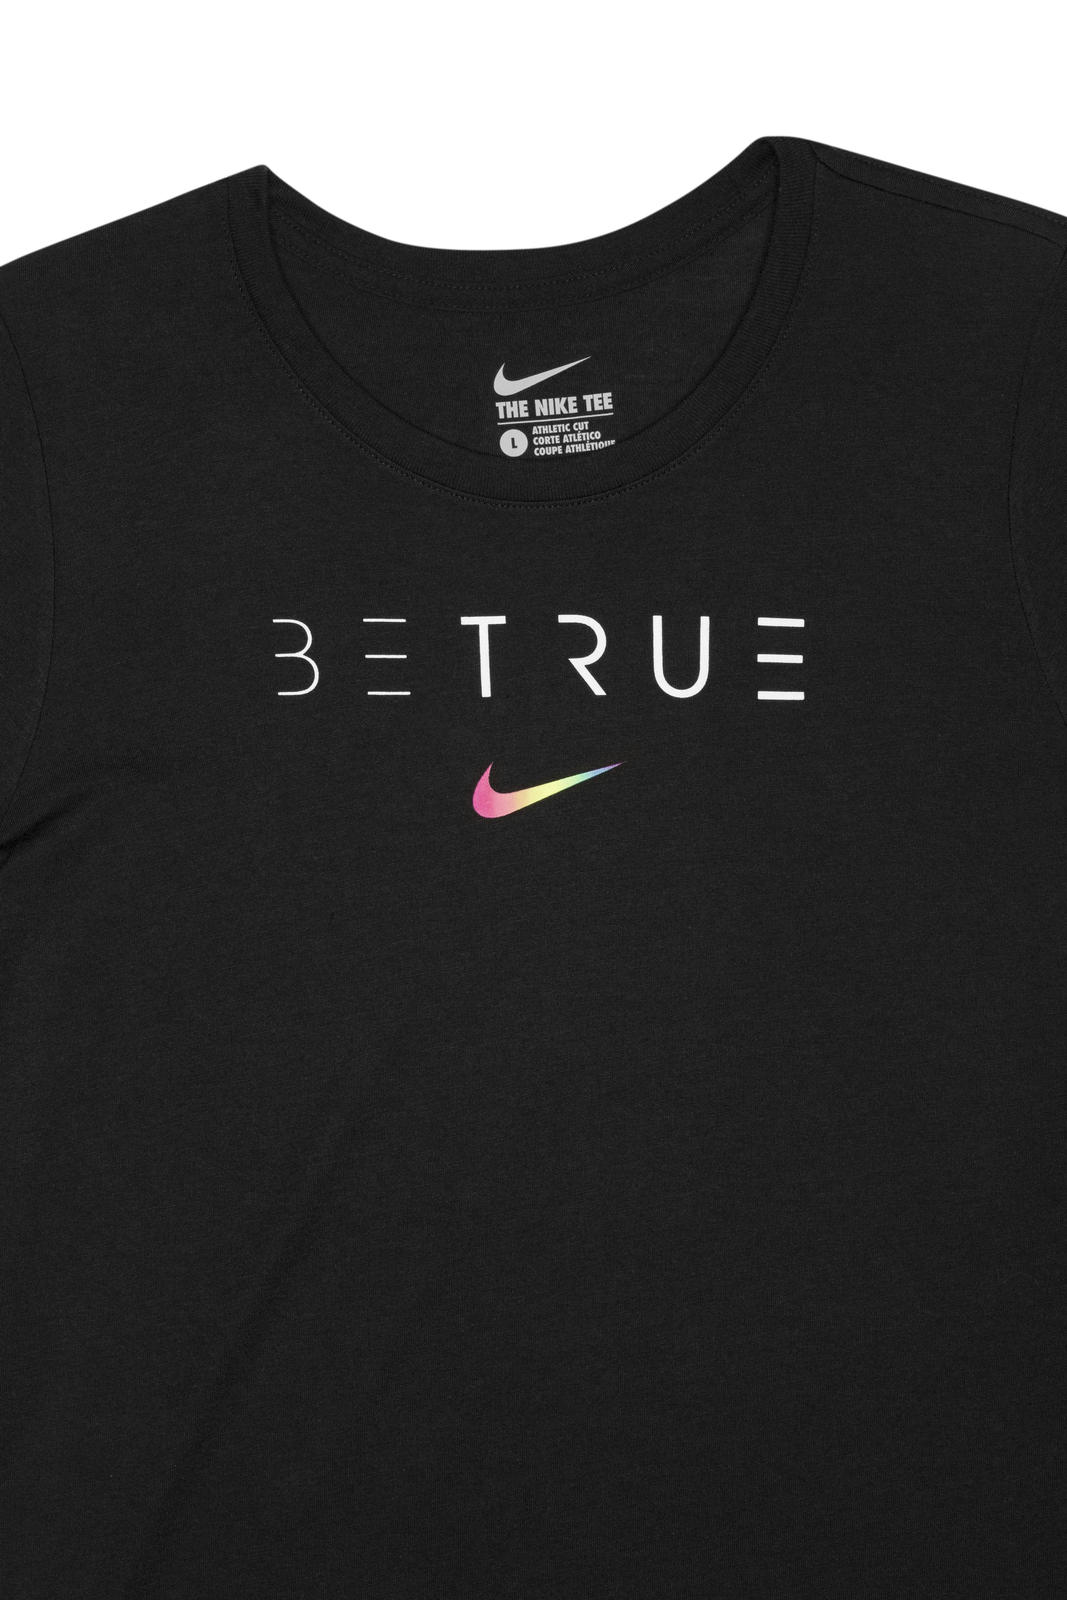 Nike Shirt For Women